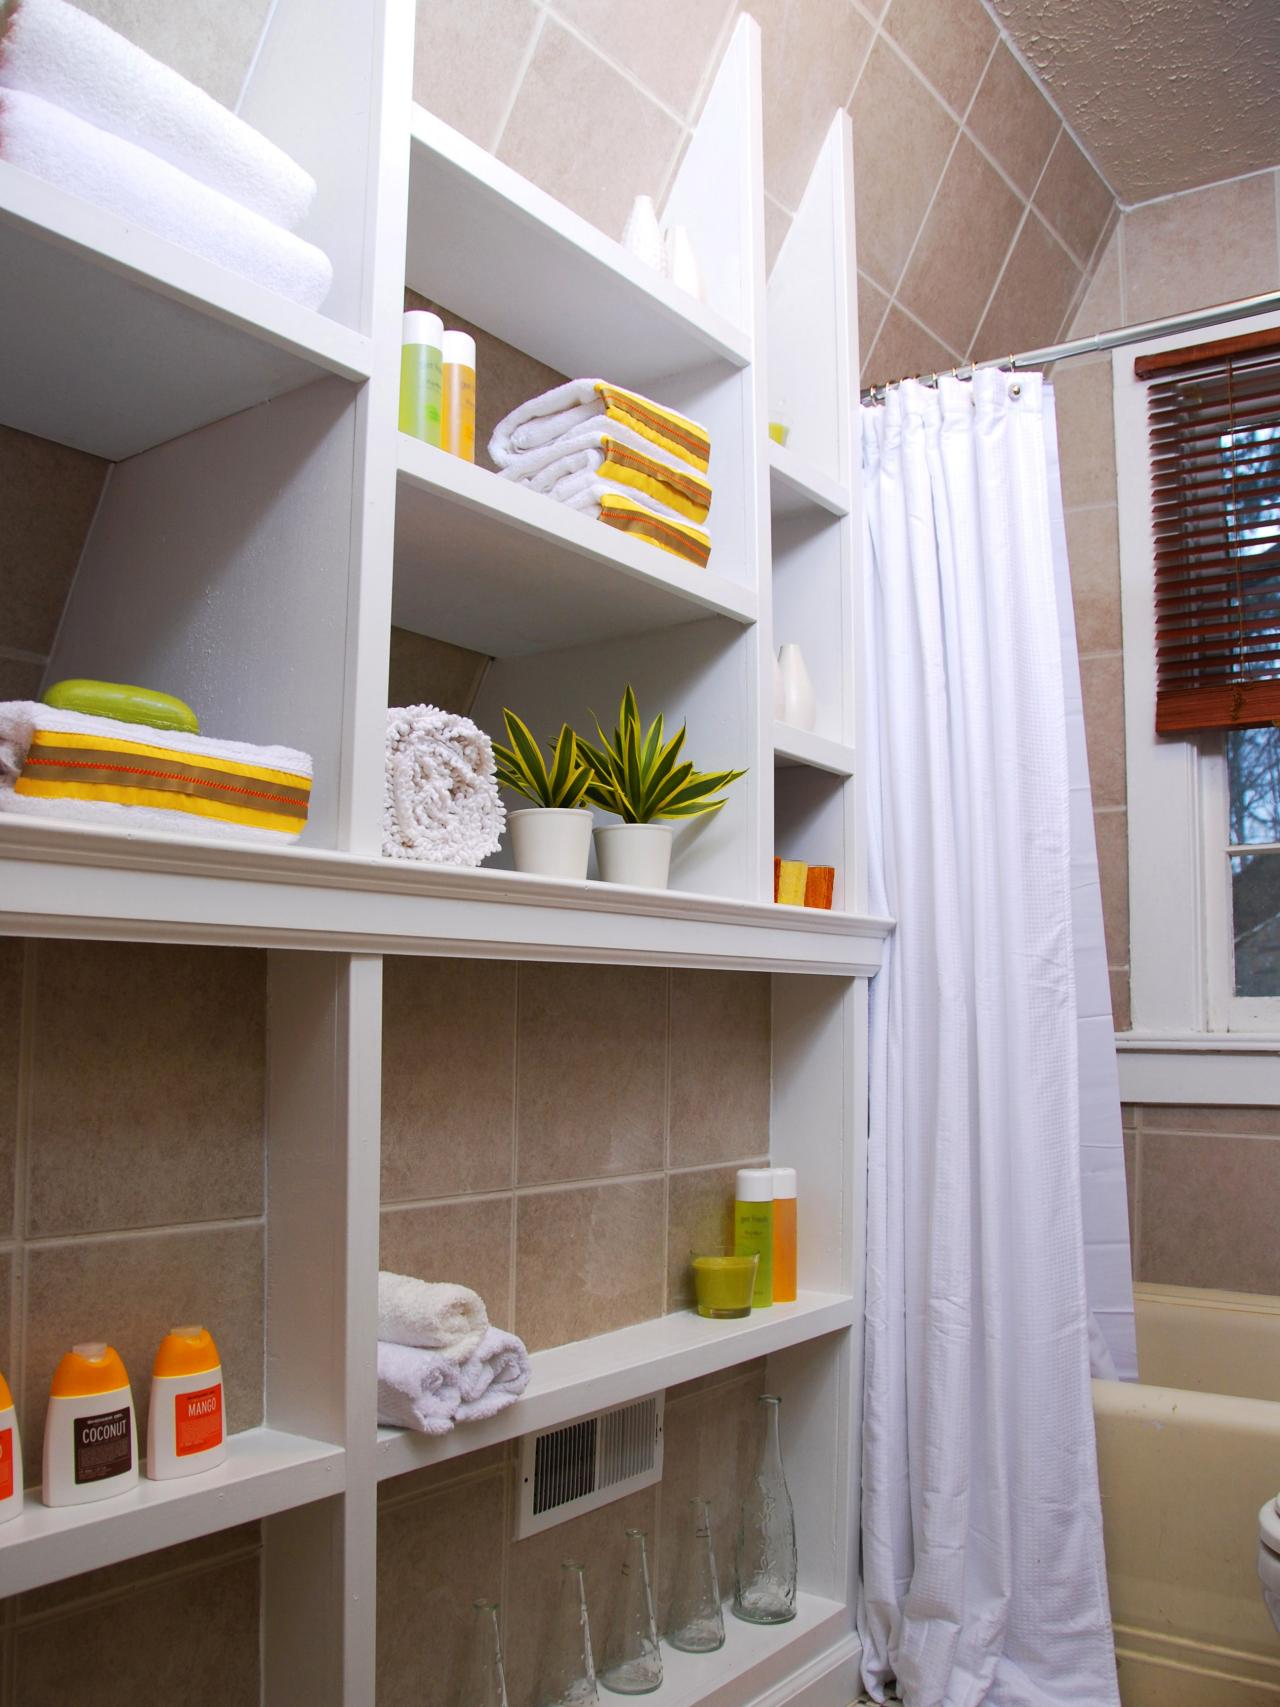 7 Creative Storage Solutions for Bathroom Towels and Toilet Paper ...